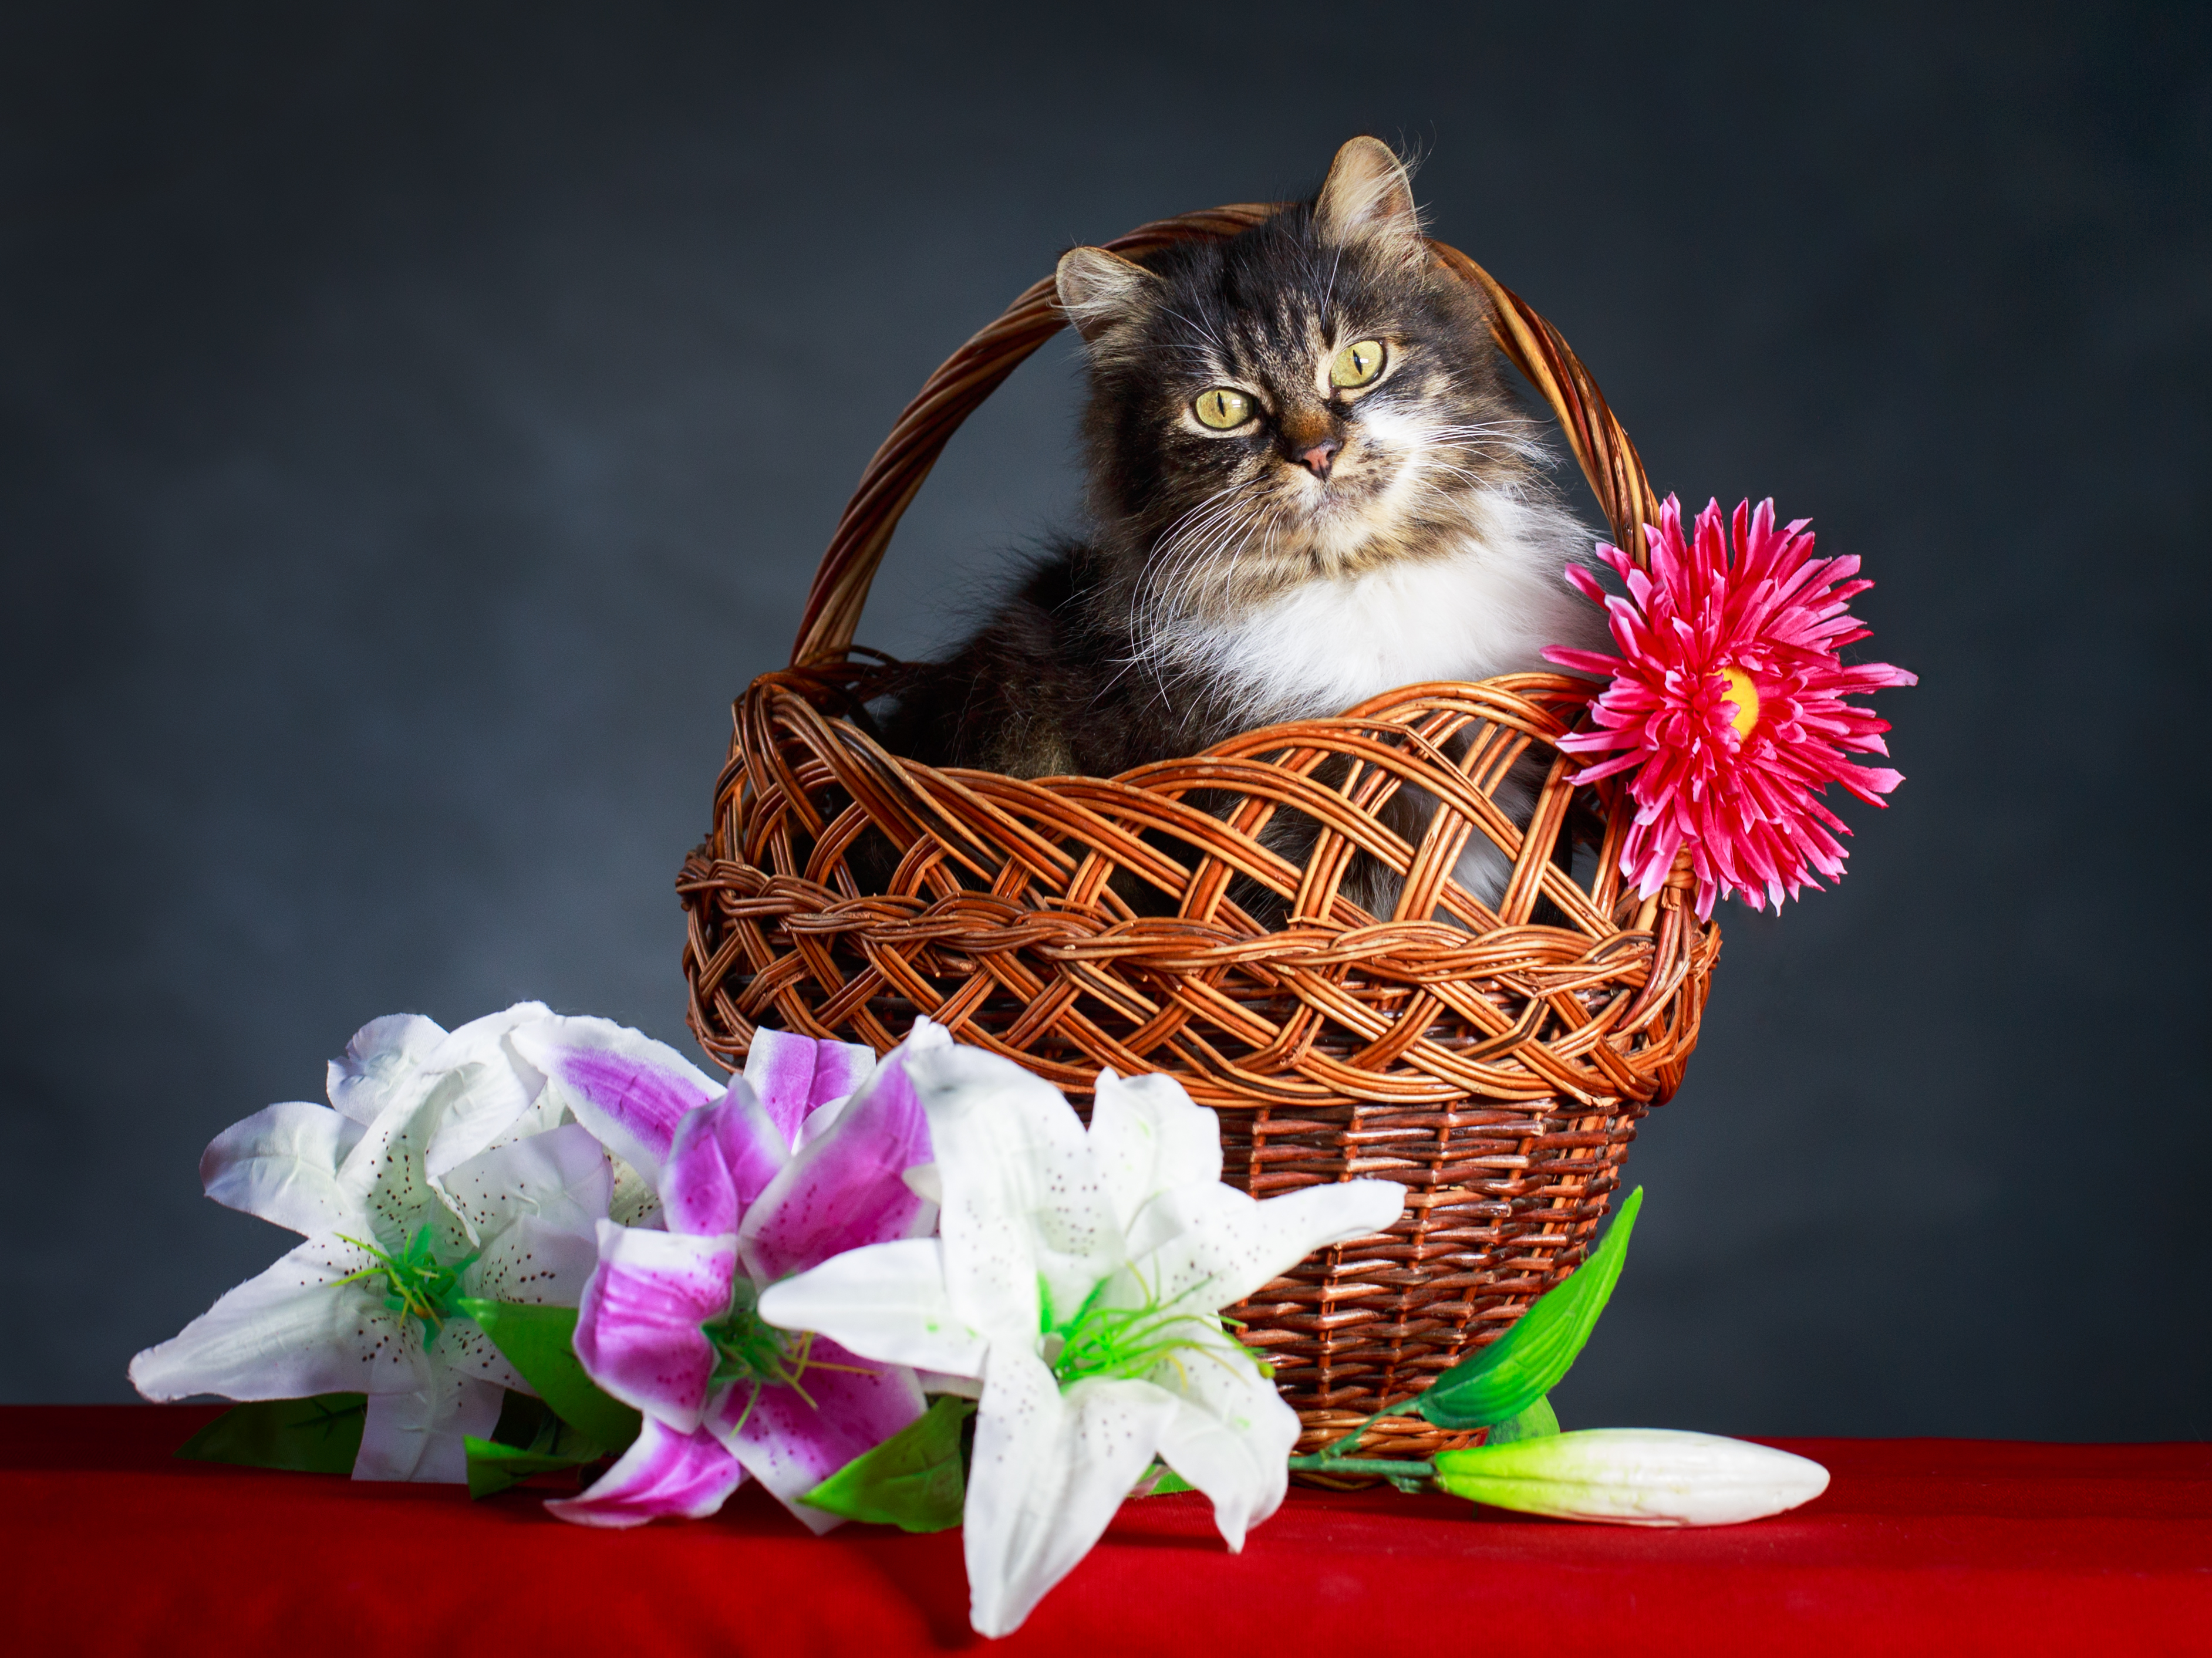 Easter lilies danger for cats a deadly combination whats wrong with this picture image courtesy of depositphotos izmirmasajfo